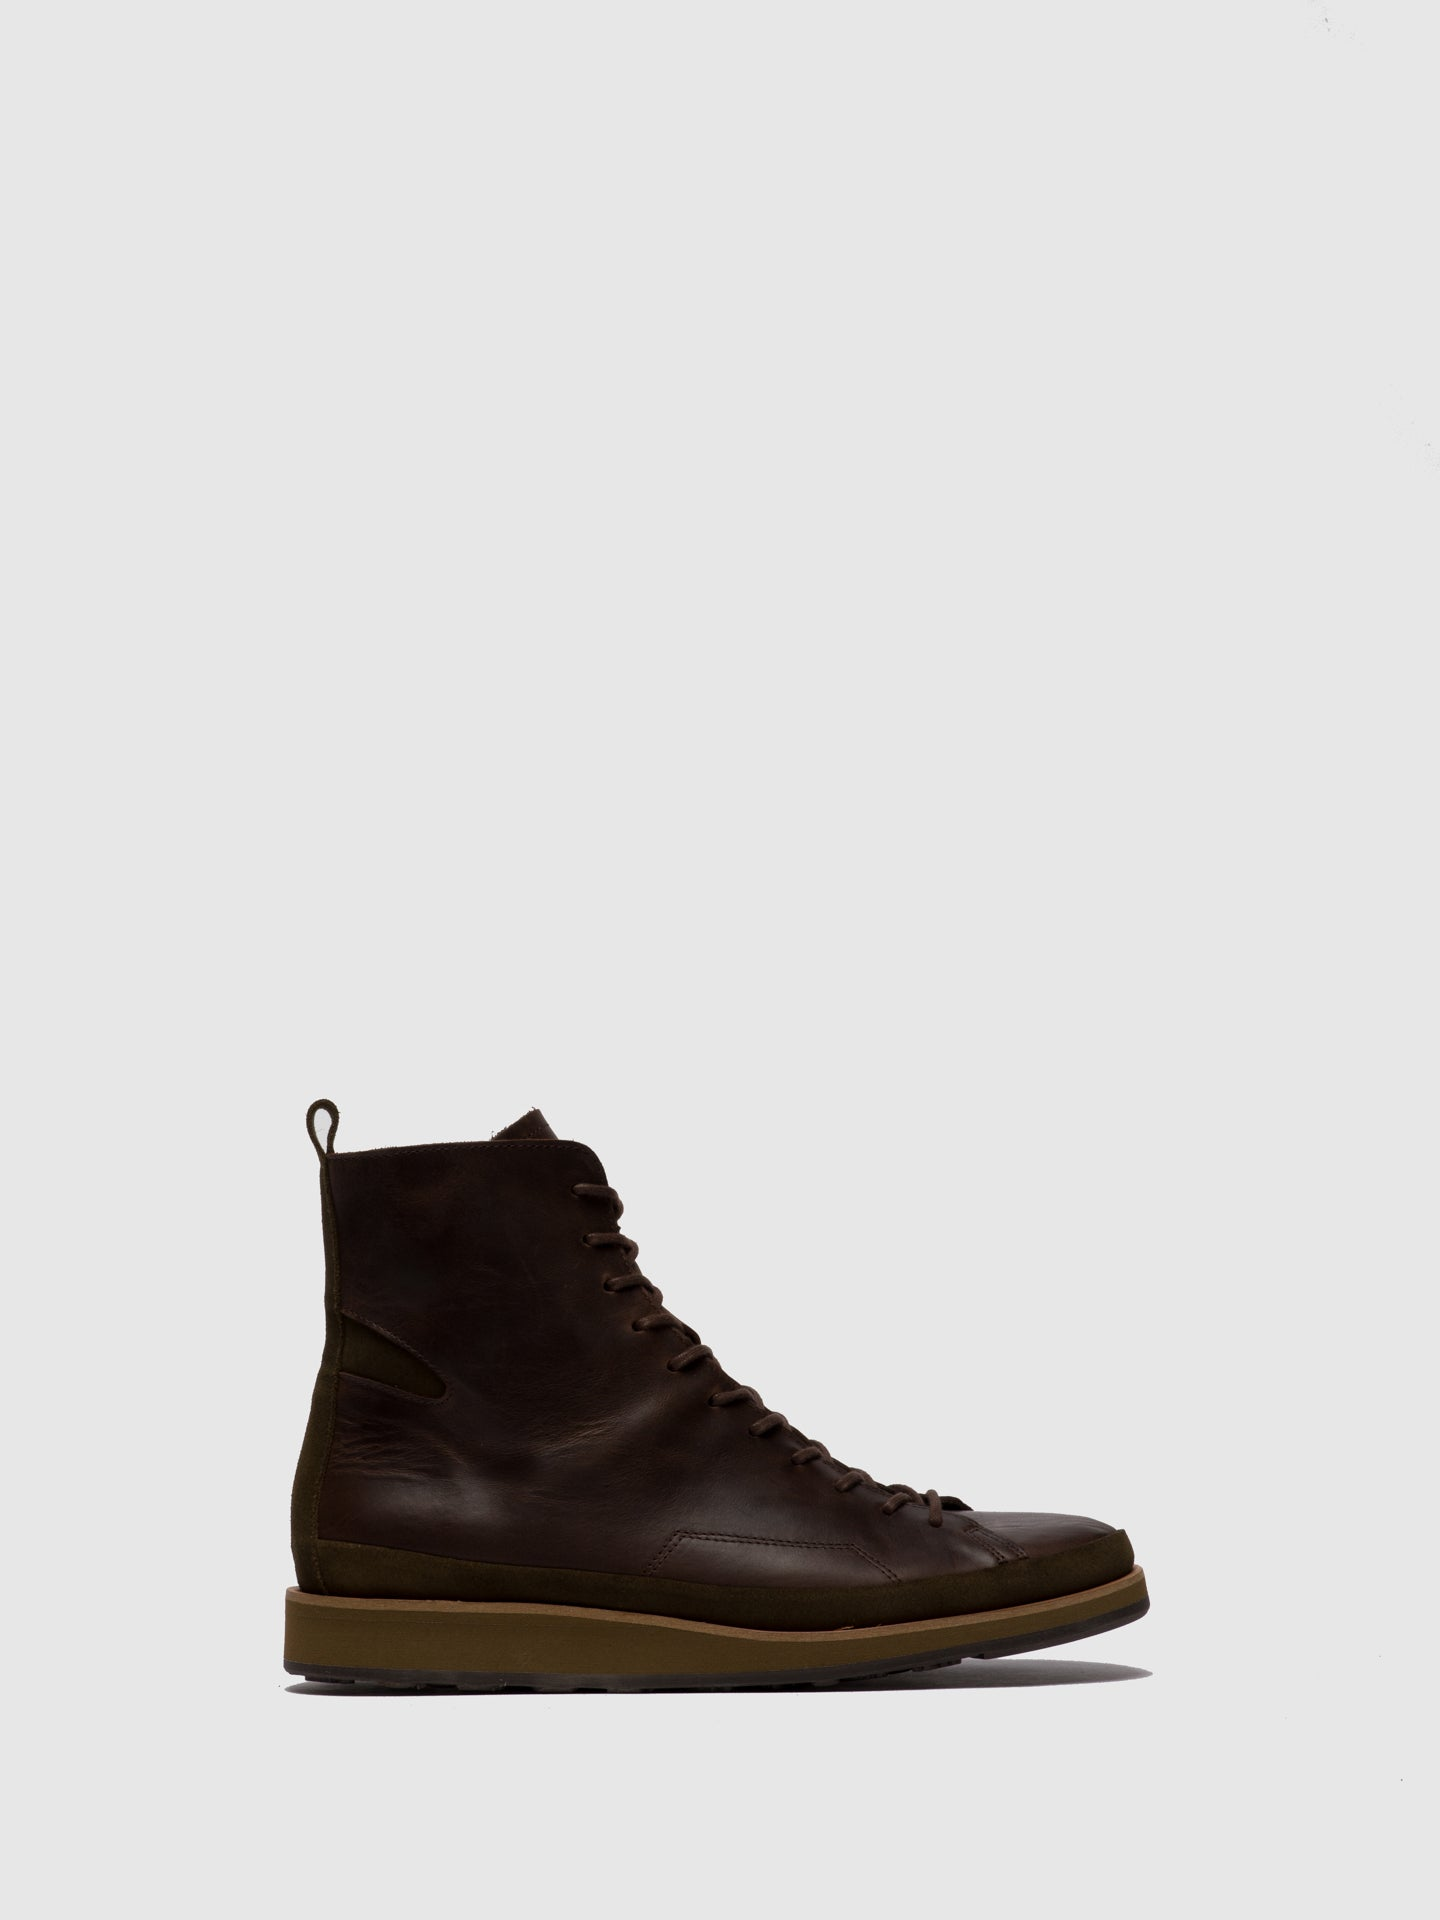 Fly London Lace-up Ankle Boots JOKA700FLY ECO/OILSUEDE(VEGETAL) MOCCA/SLUDGE